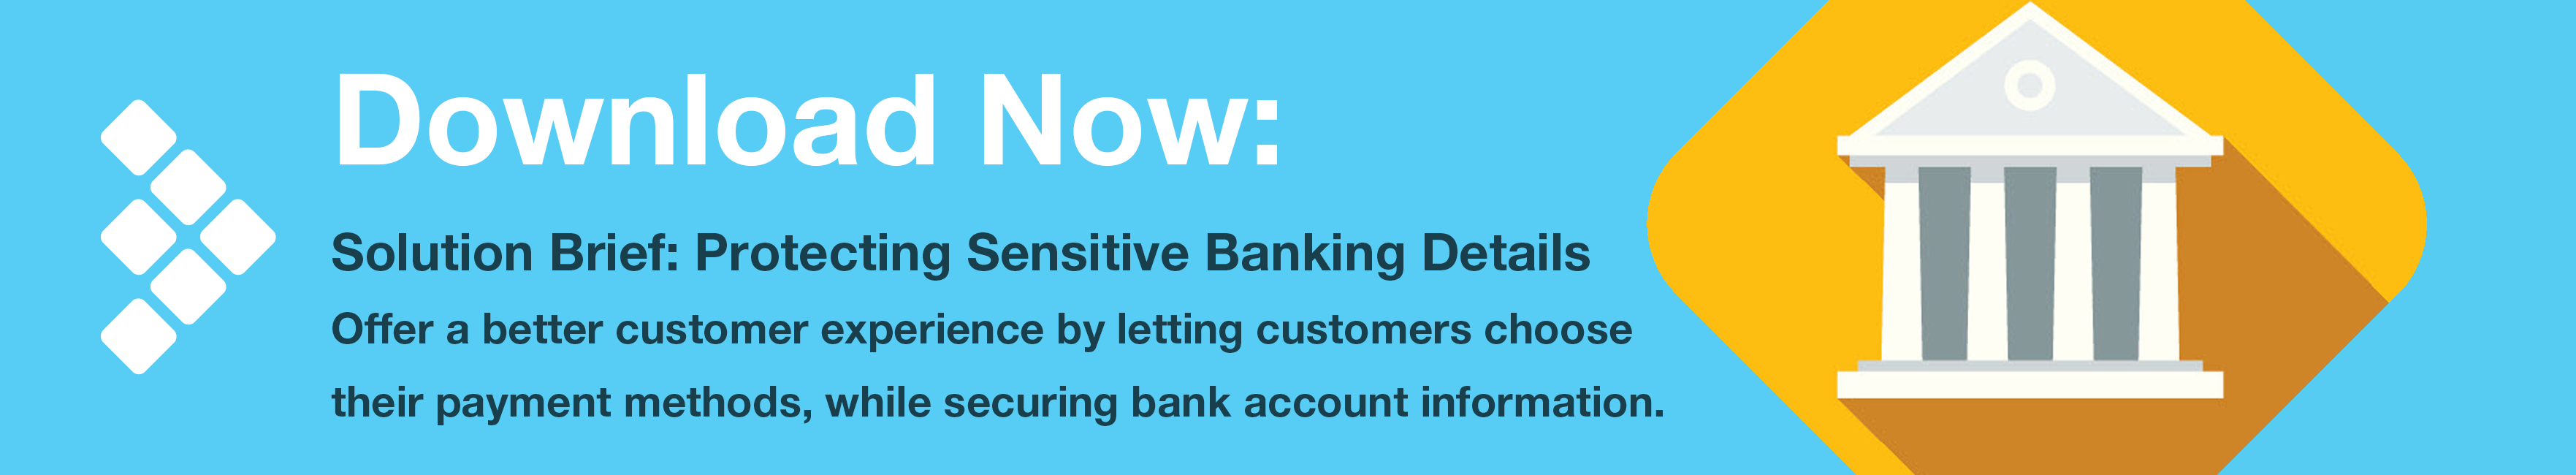 Download Now - Solution Brief: Protecting Sensitive Banking Details